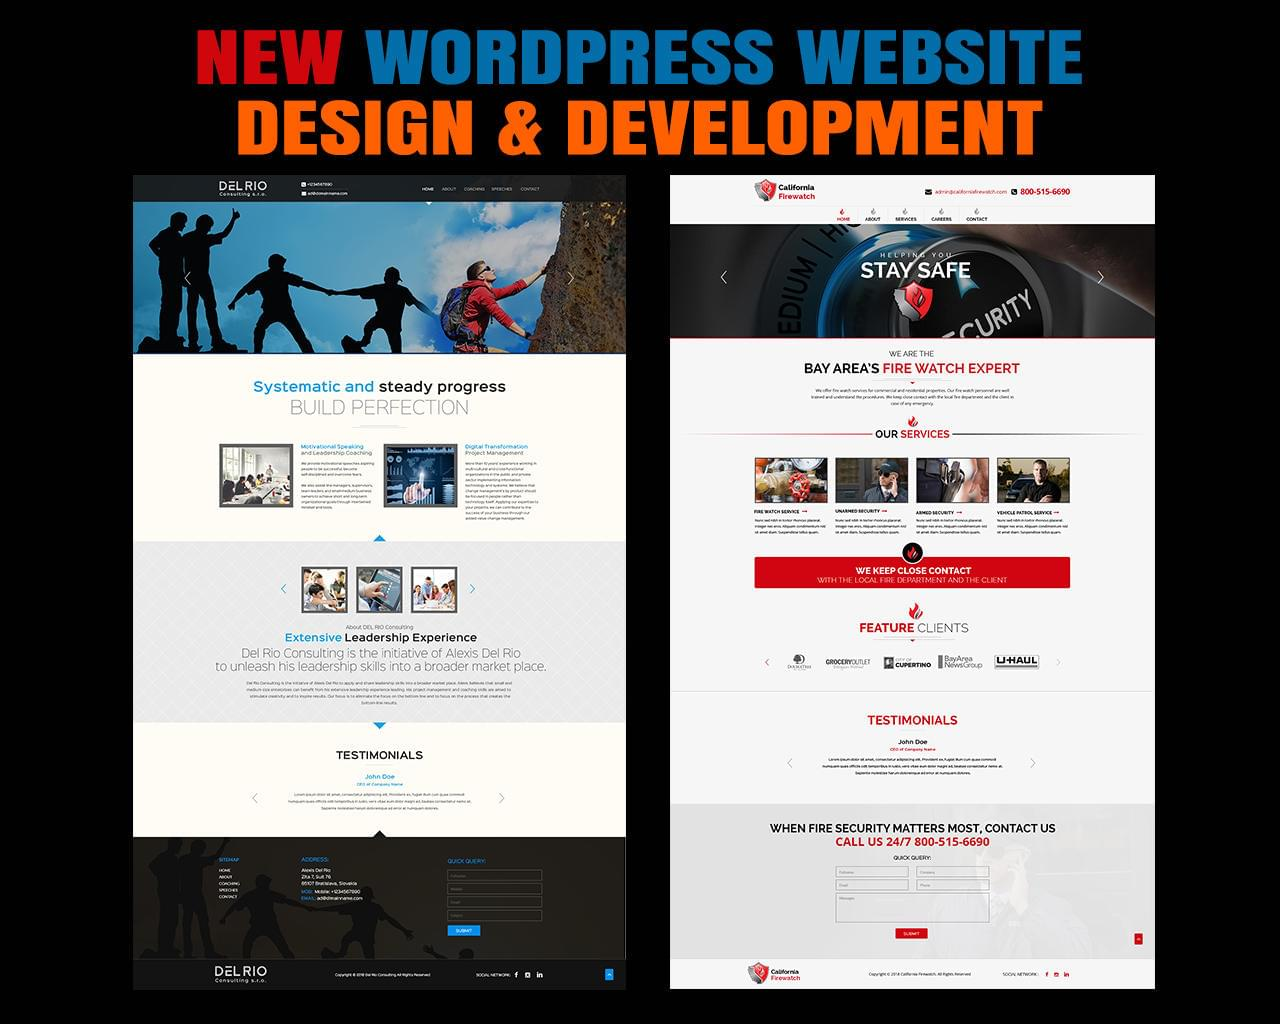 New Wordpress Website Design & Development by kreativenet - 114770